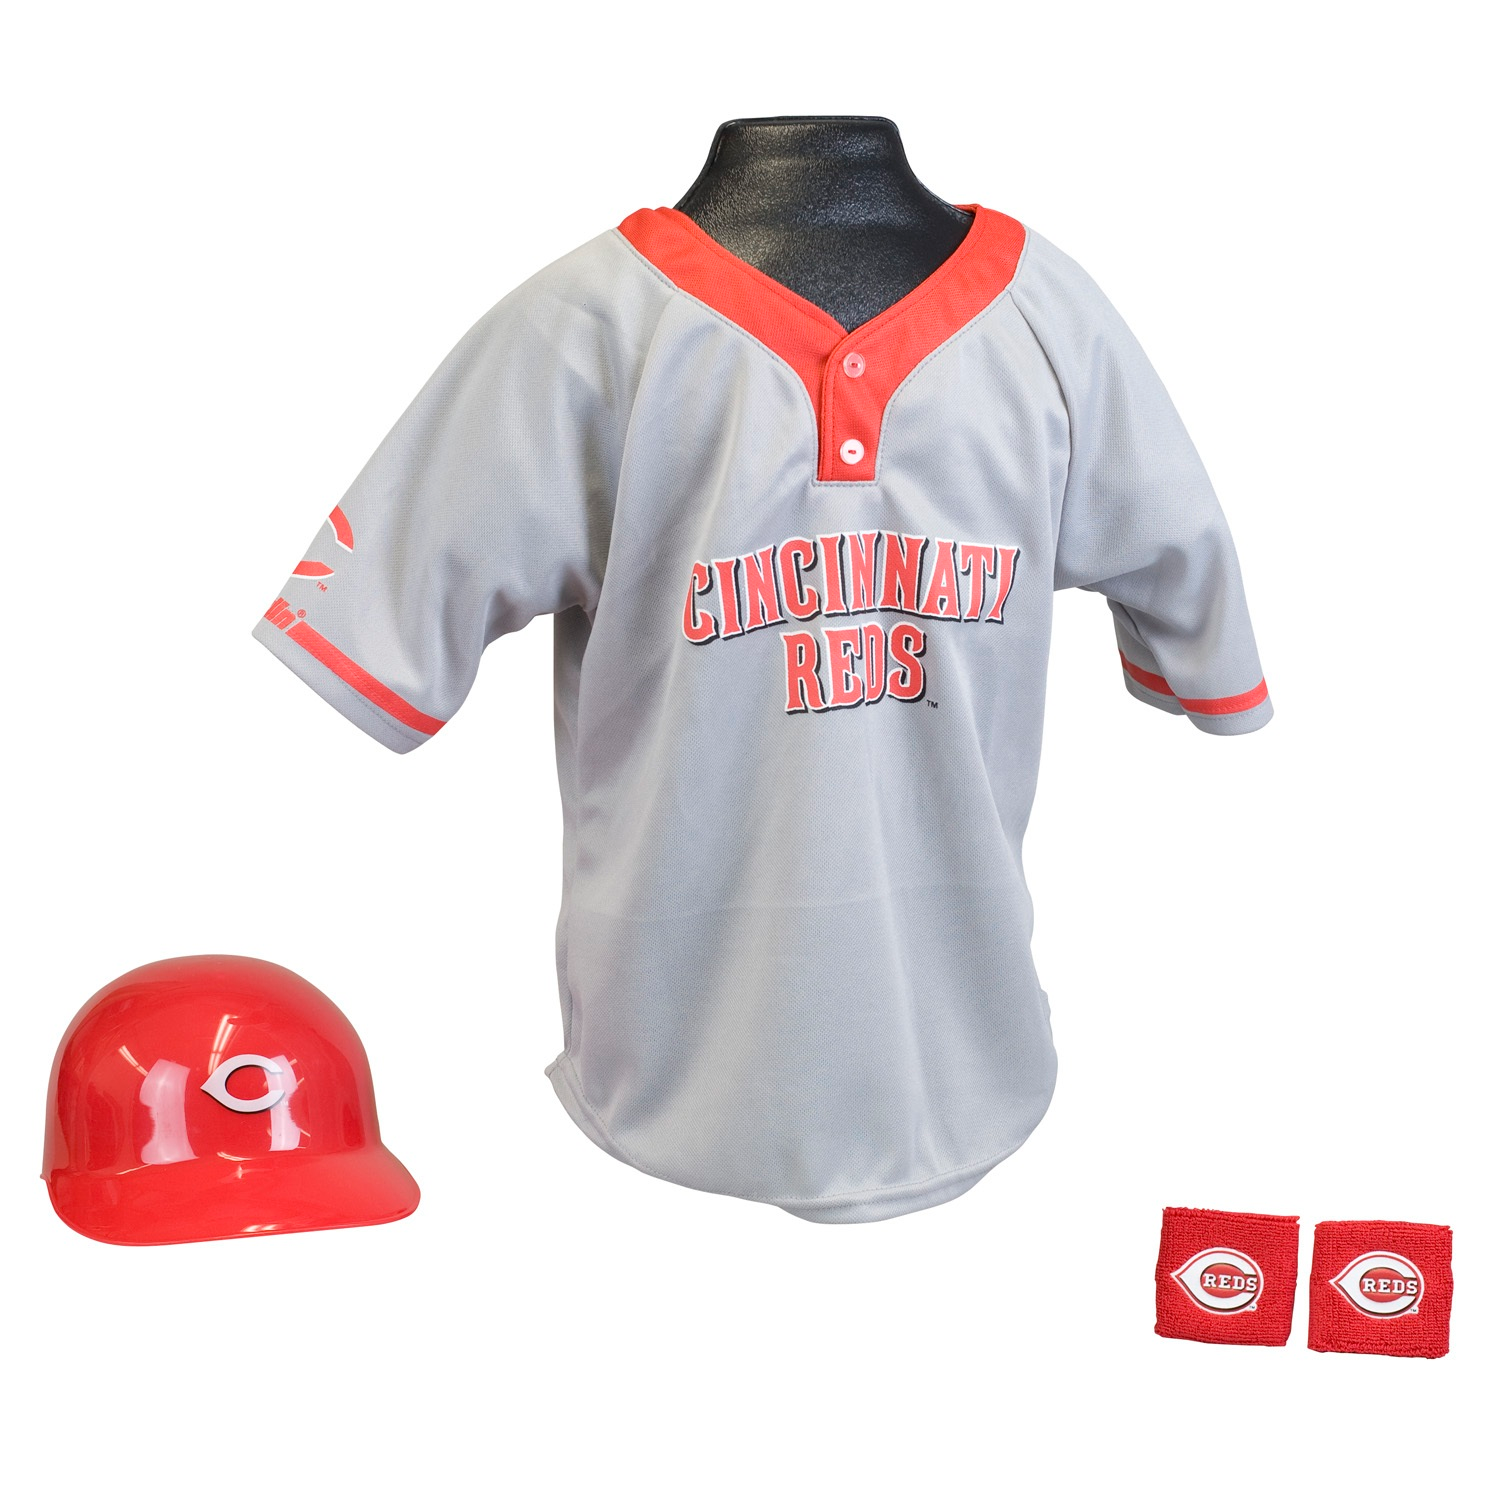 Cincinnati Reds MLB Youth Uniform Set Halloween Costume